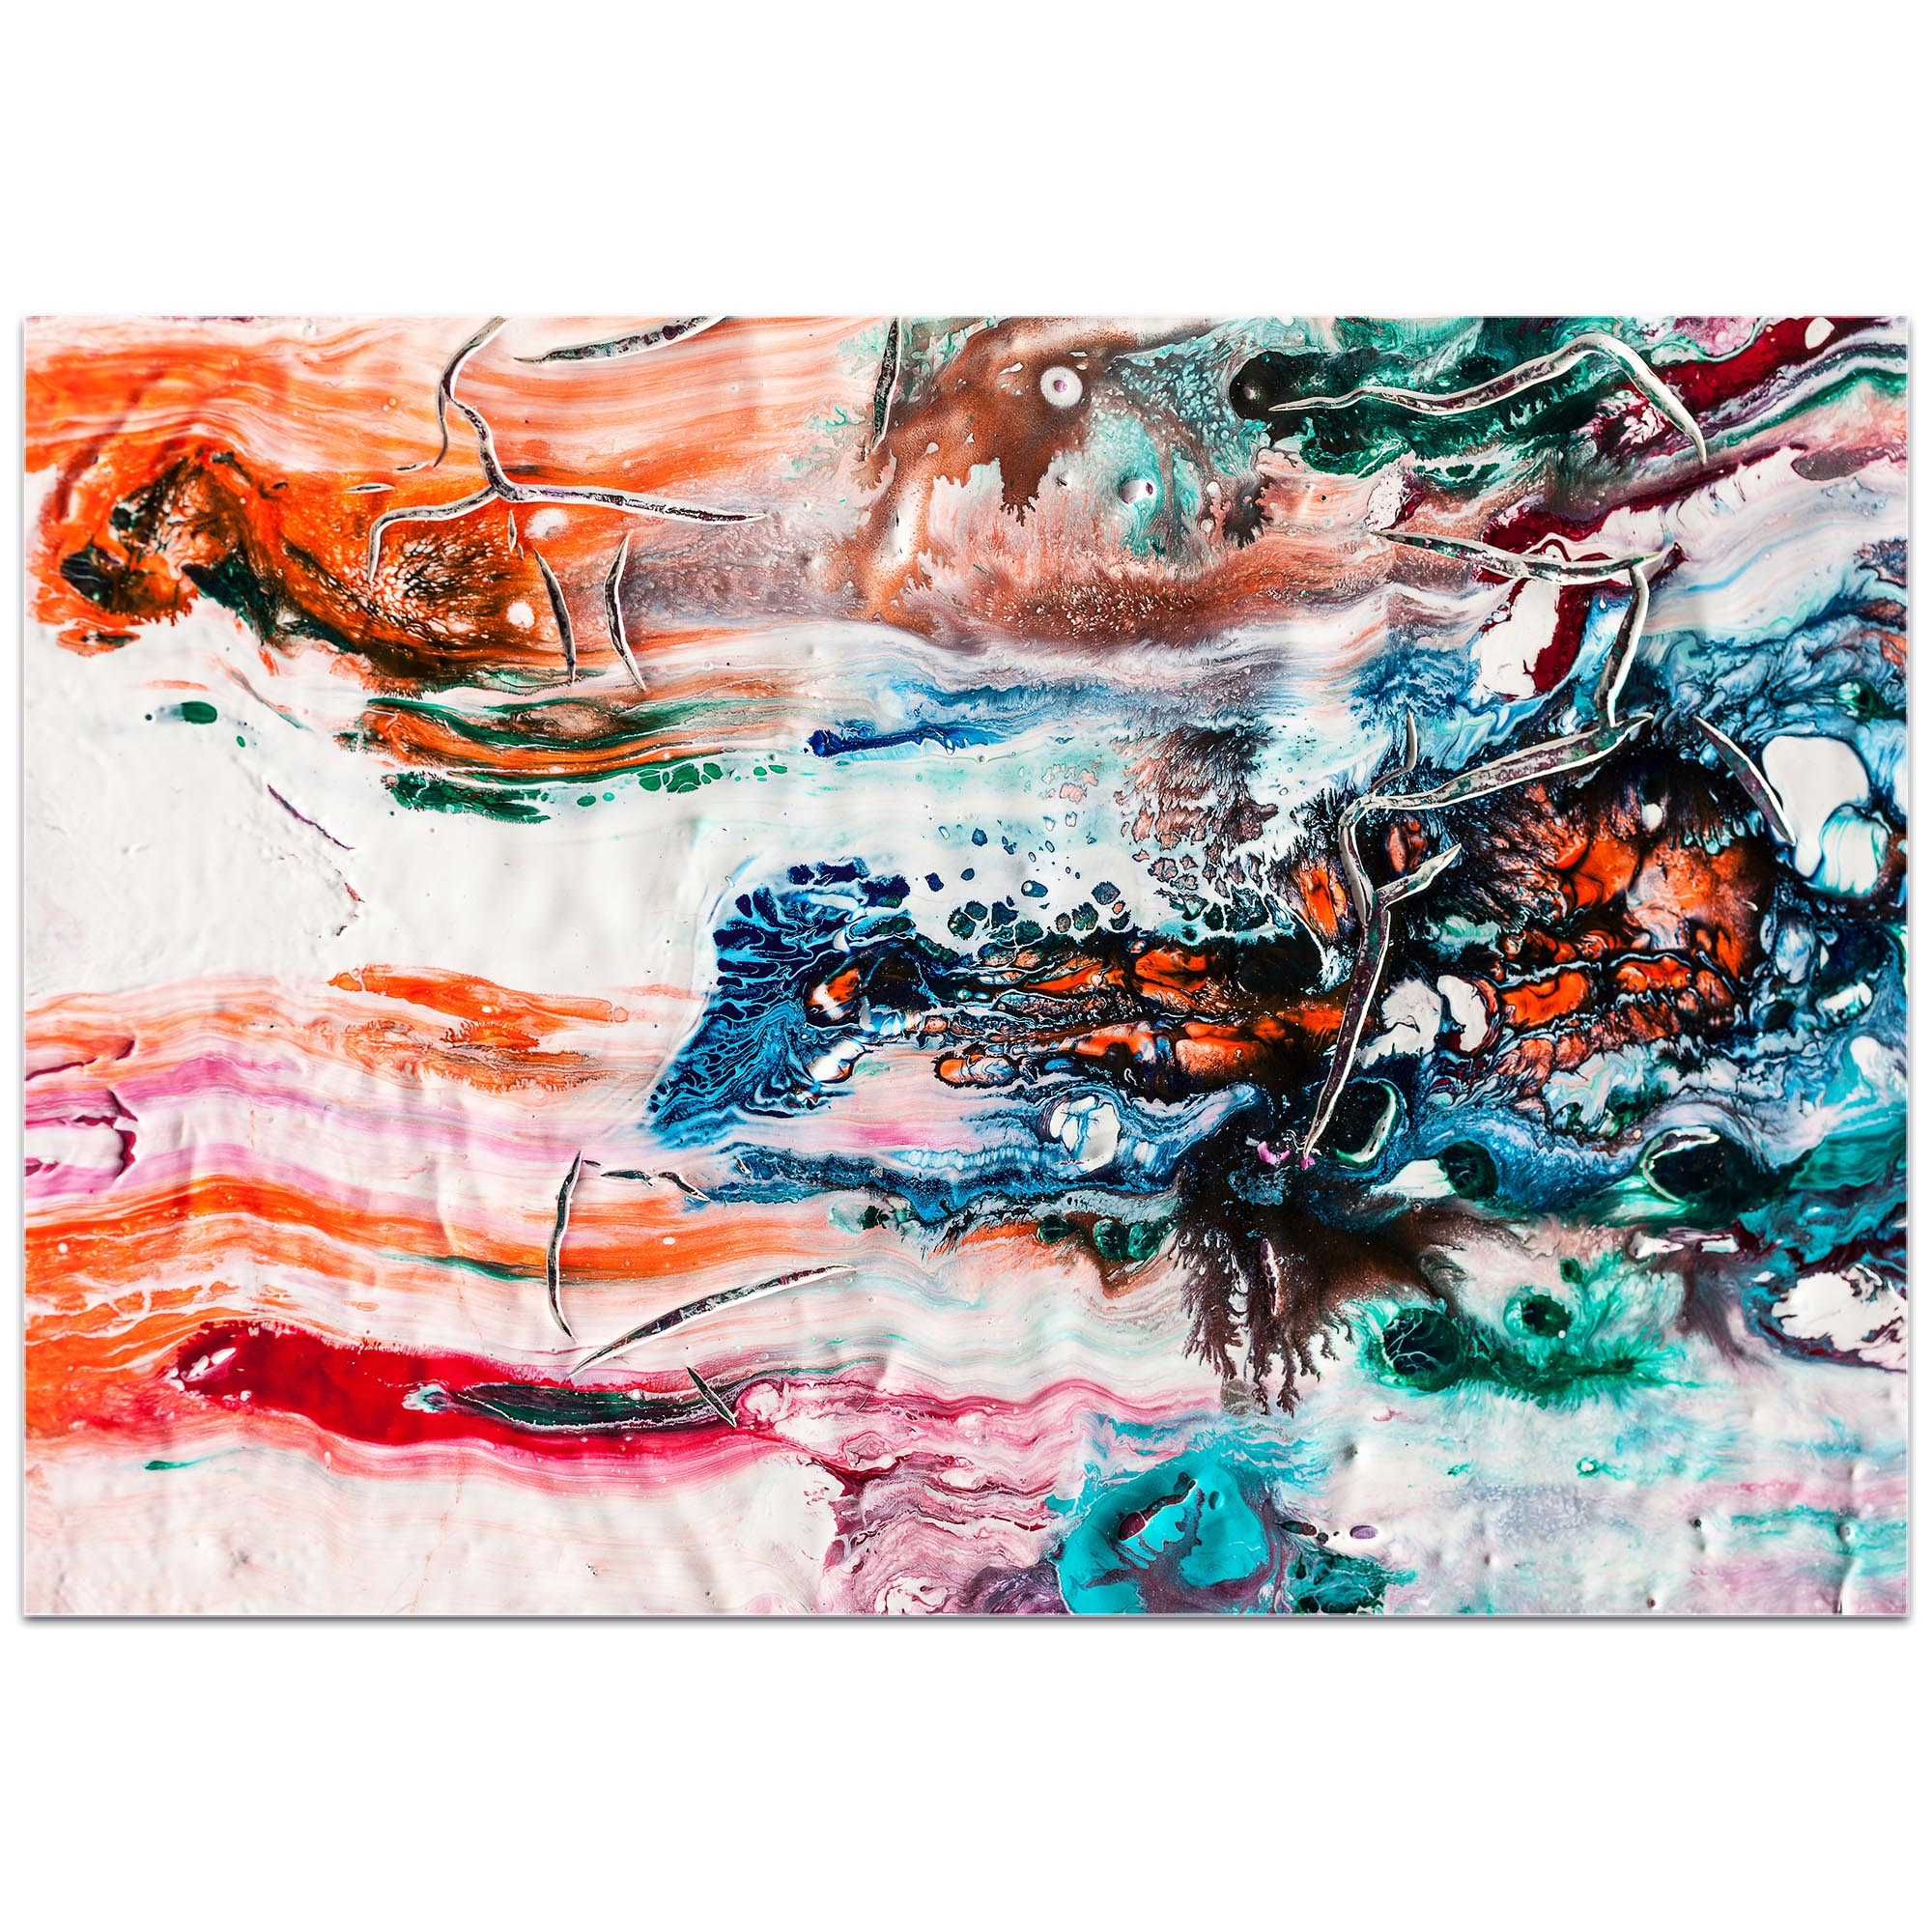 Abstract Wall Art 'Sunset on Her Breath 1' - Colorful Urban Decor on Metal or Plexiglass - Image 2